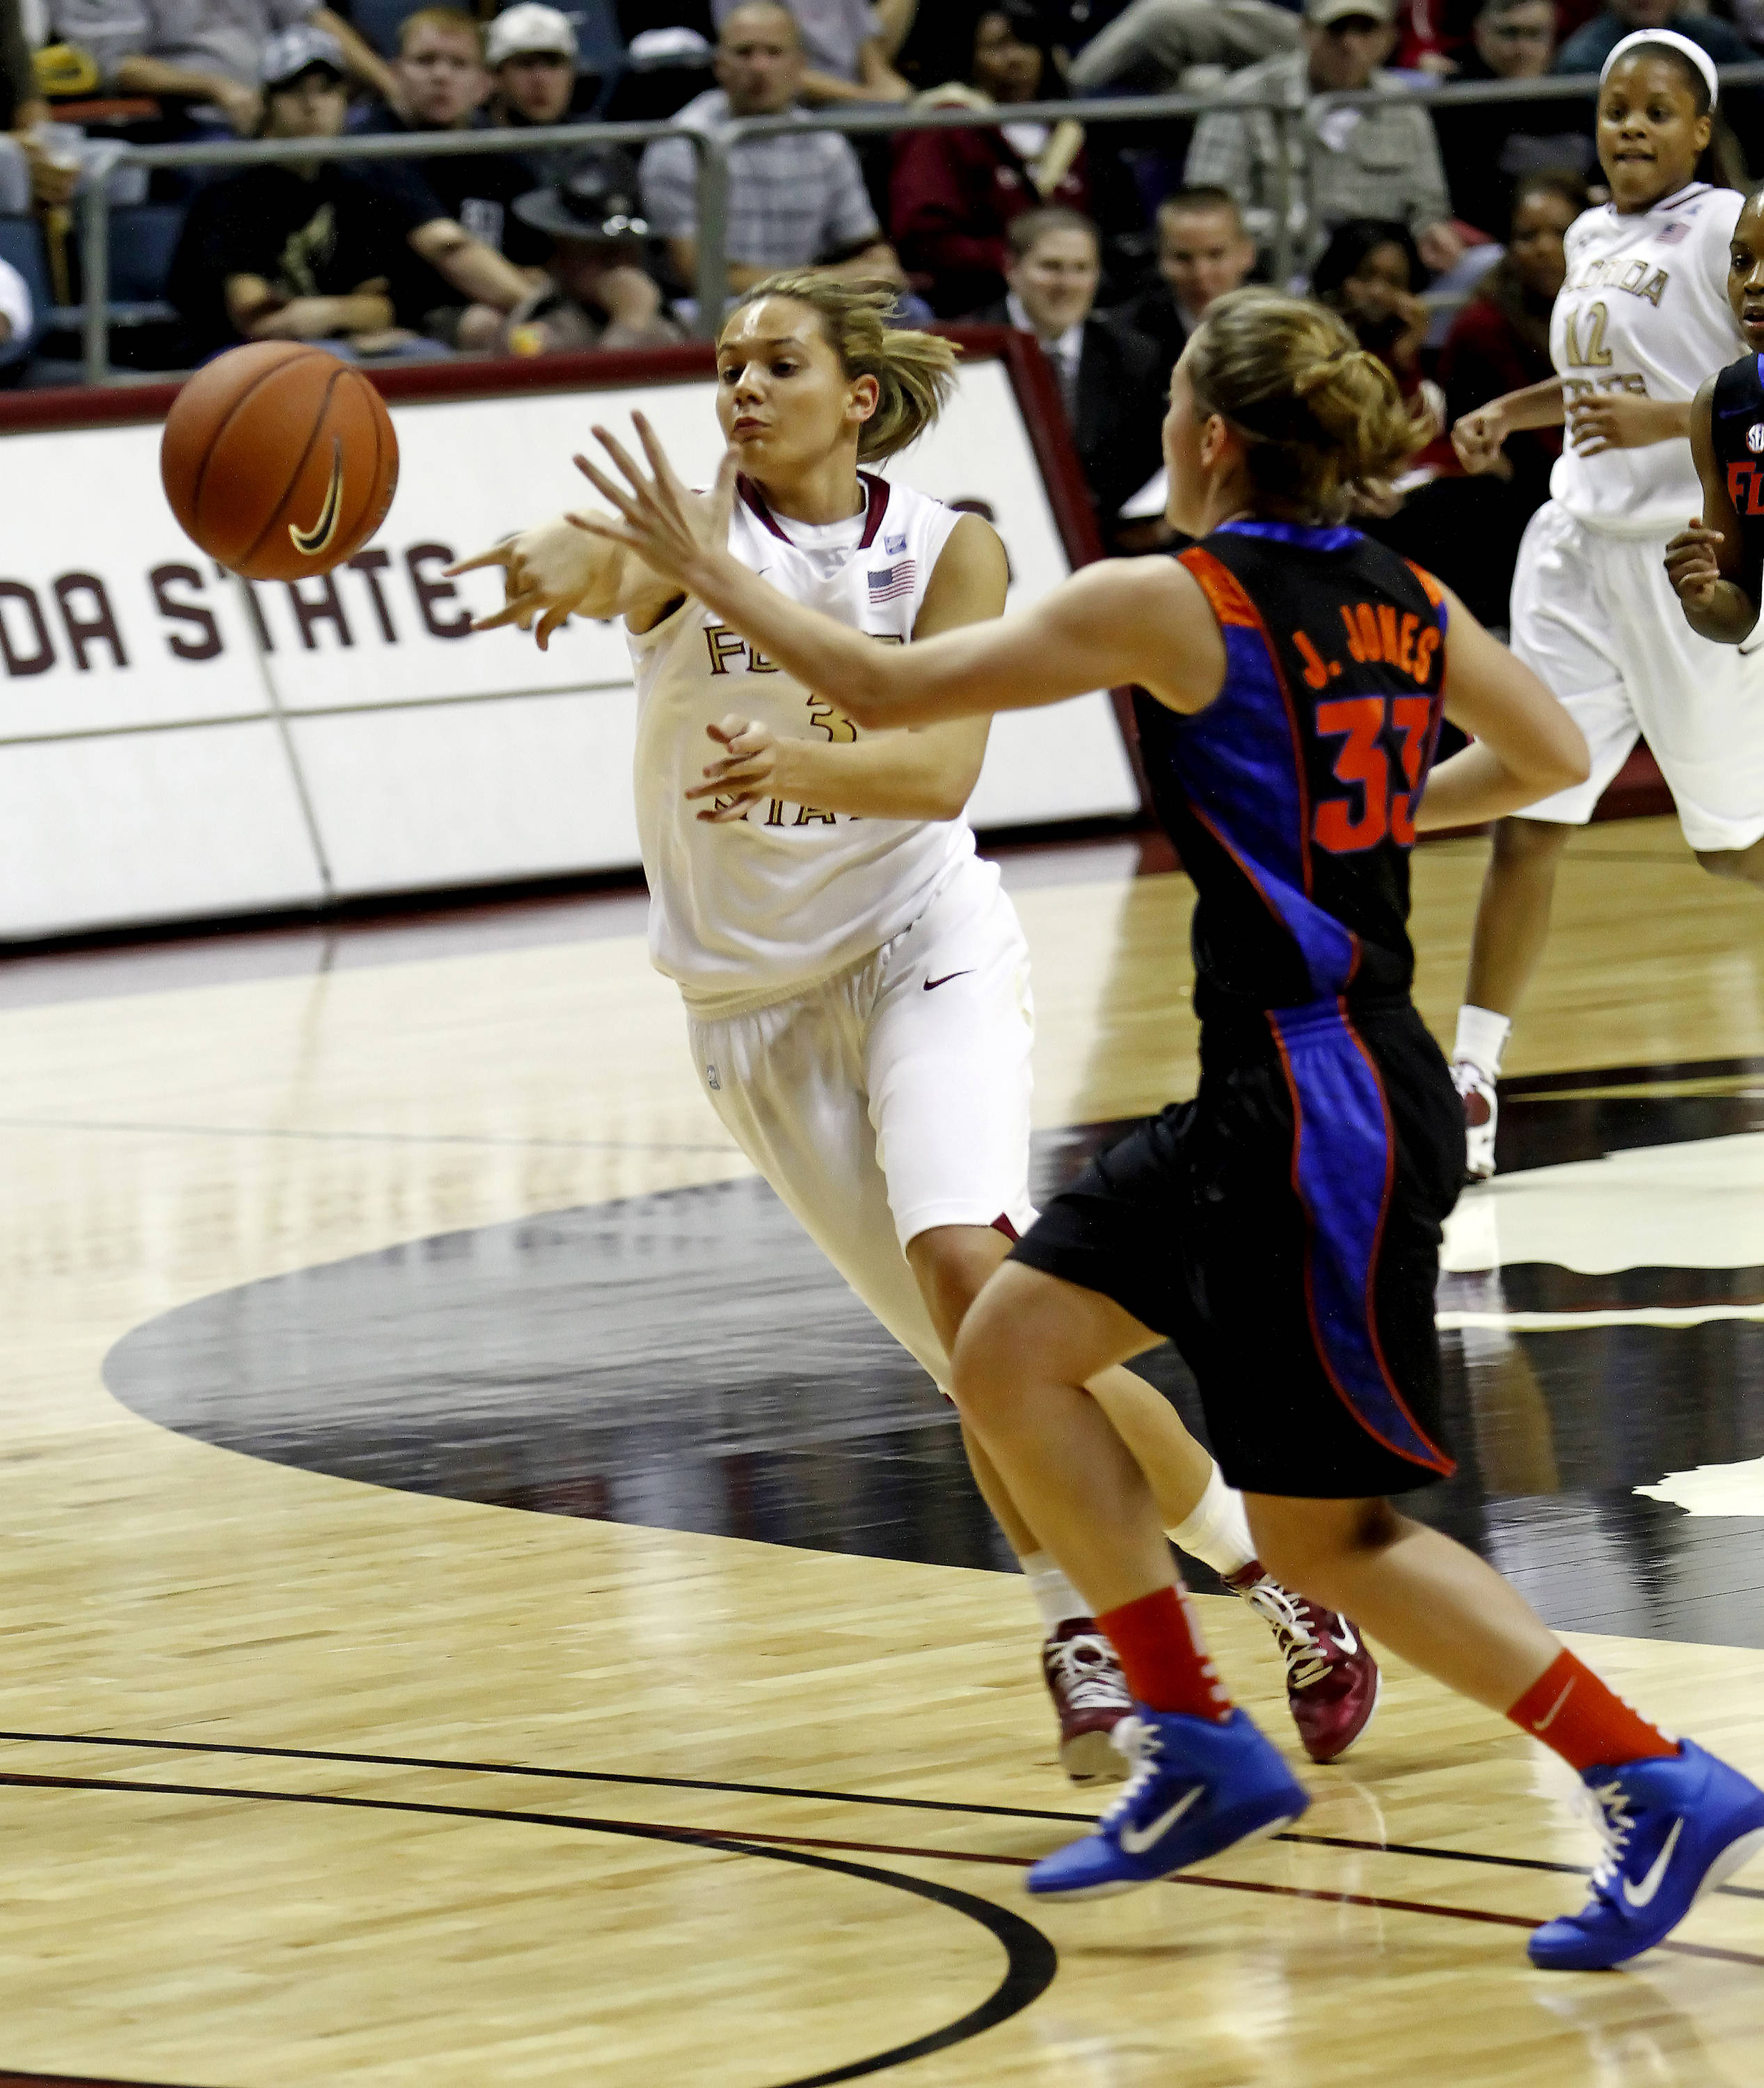 FSU vs Florida - 12/28/10 - Alexa Deluzio (3),#$%^Photo by Steve Musco